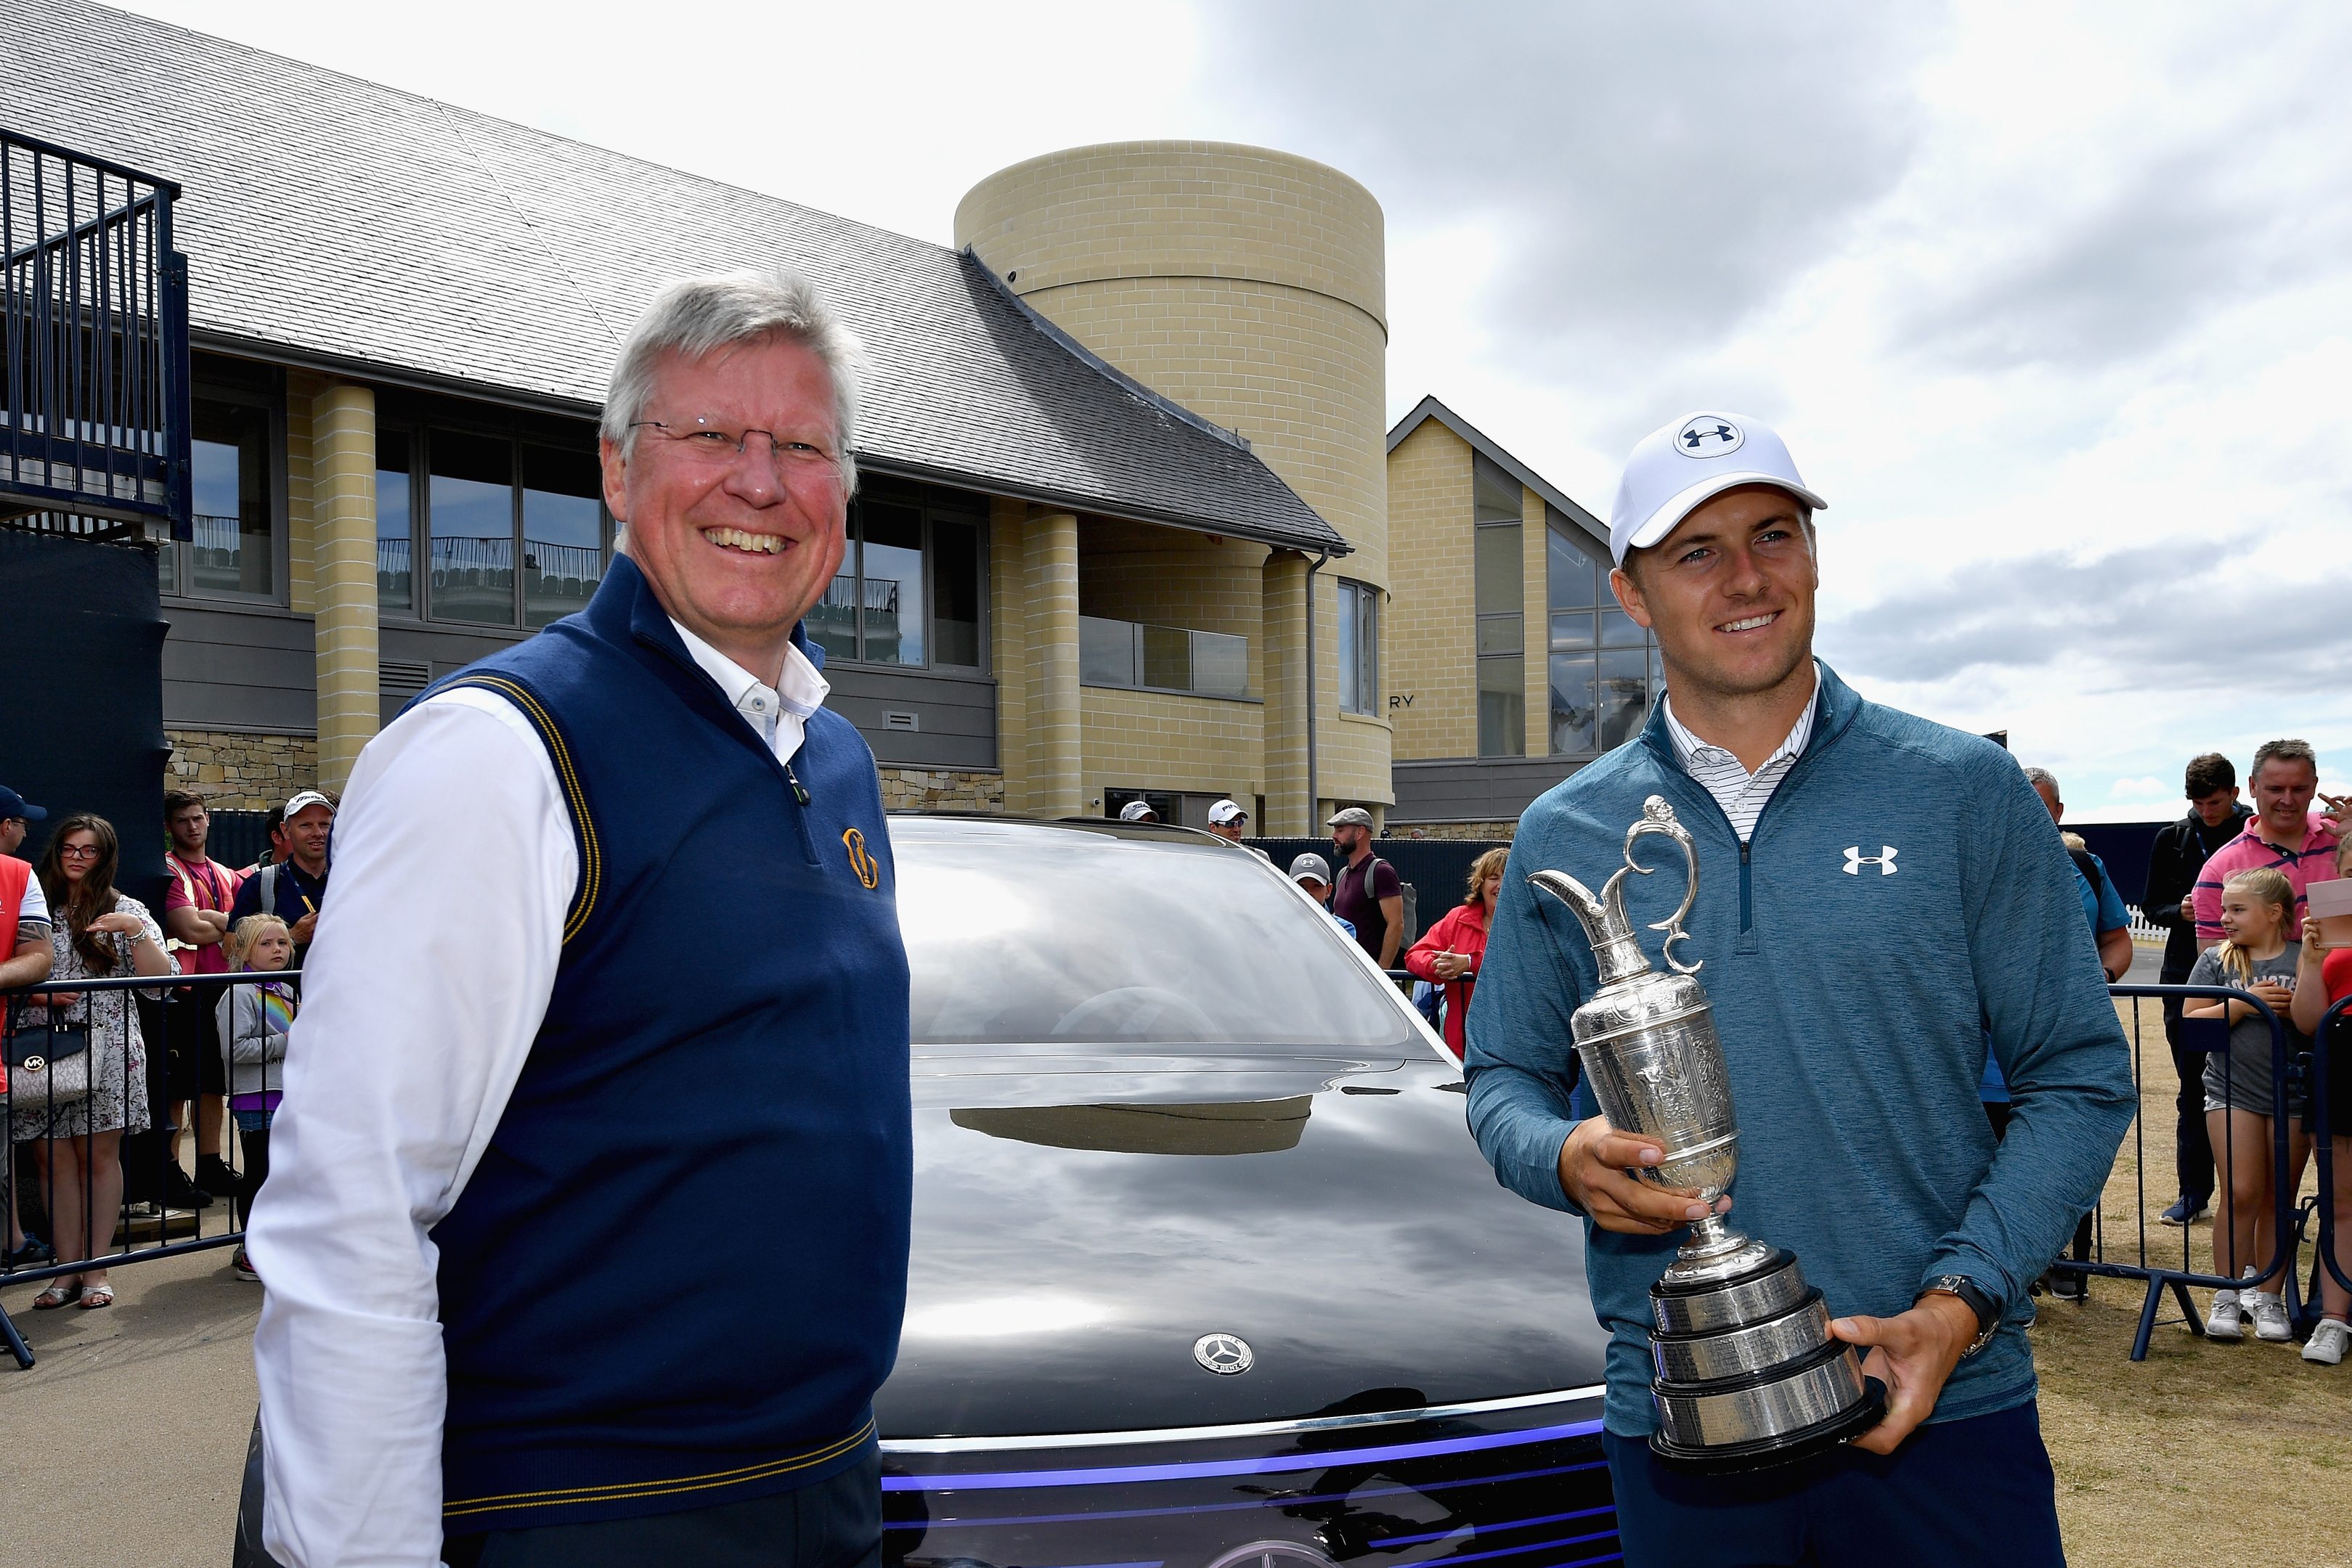 Jordan Spieth rpepares to relinquish the Caret Jug back into the care of Martin Slumbers at Carnoustie yesterday.